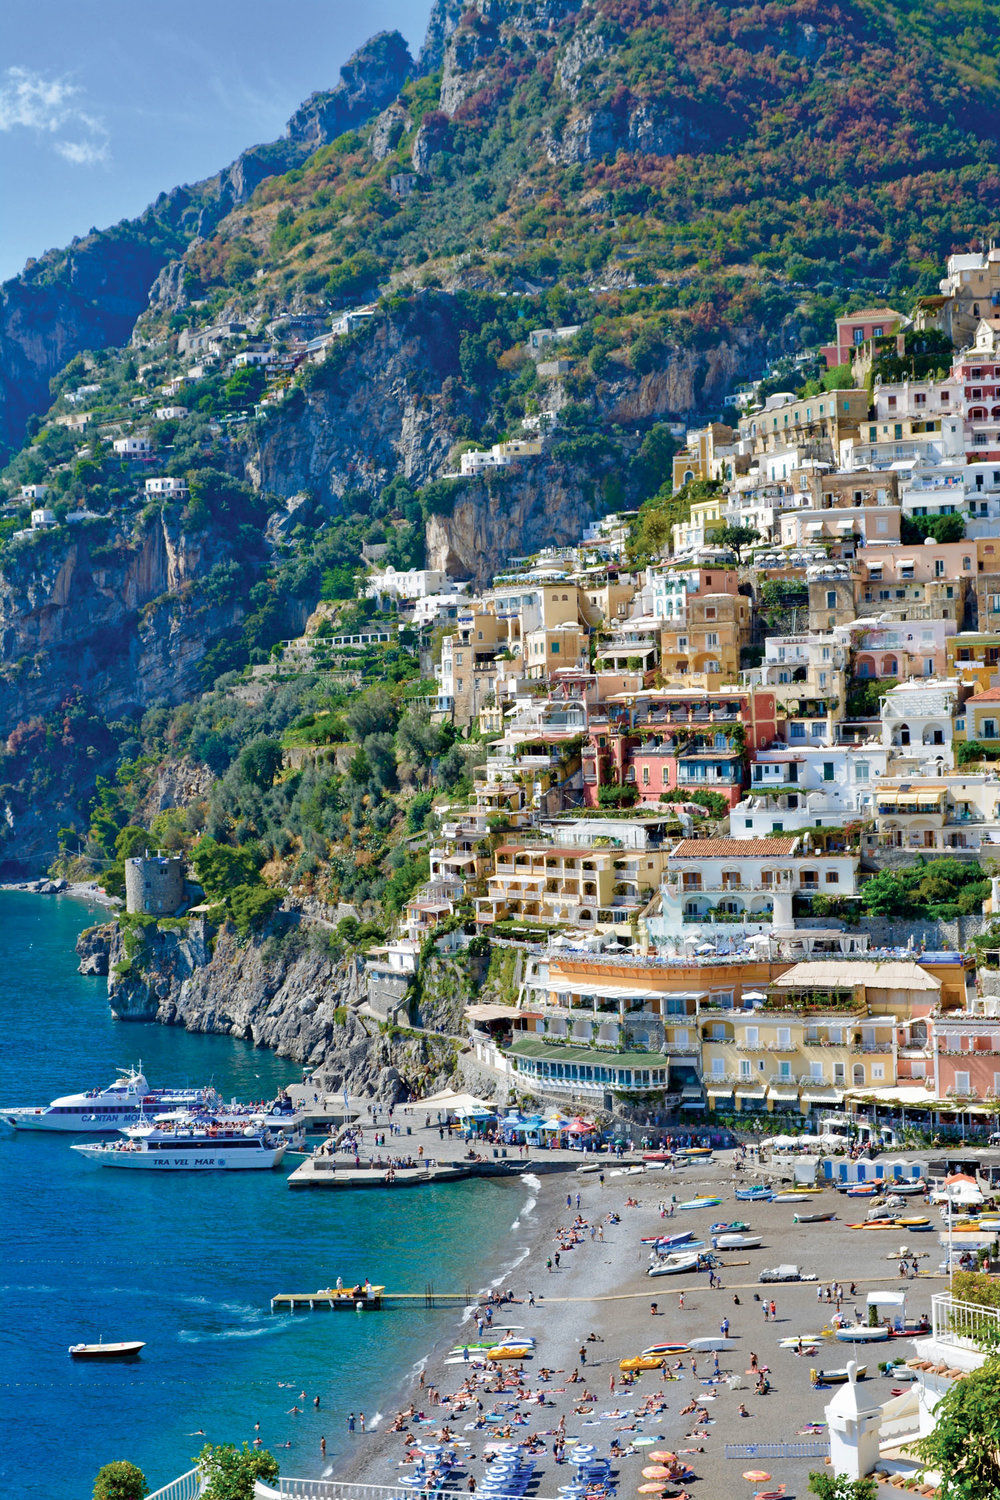 The cliffside village of Positano from our luncheon terrace.